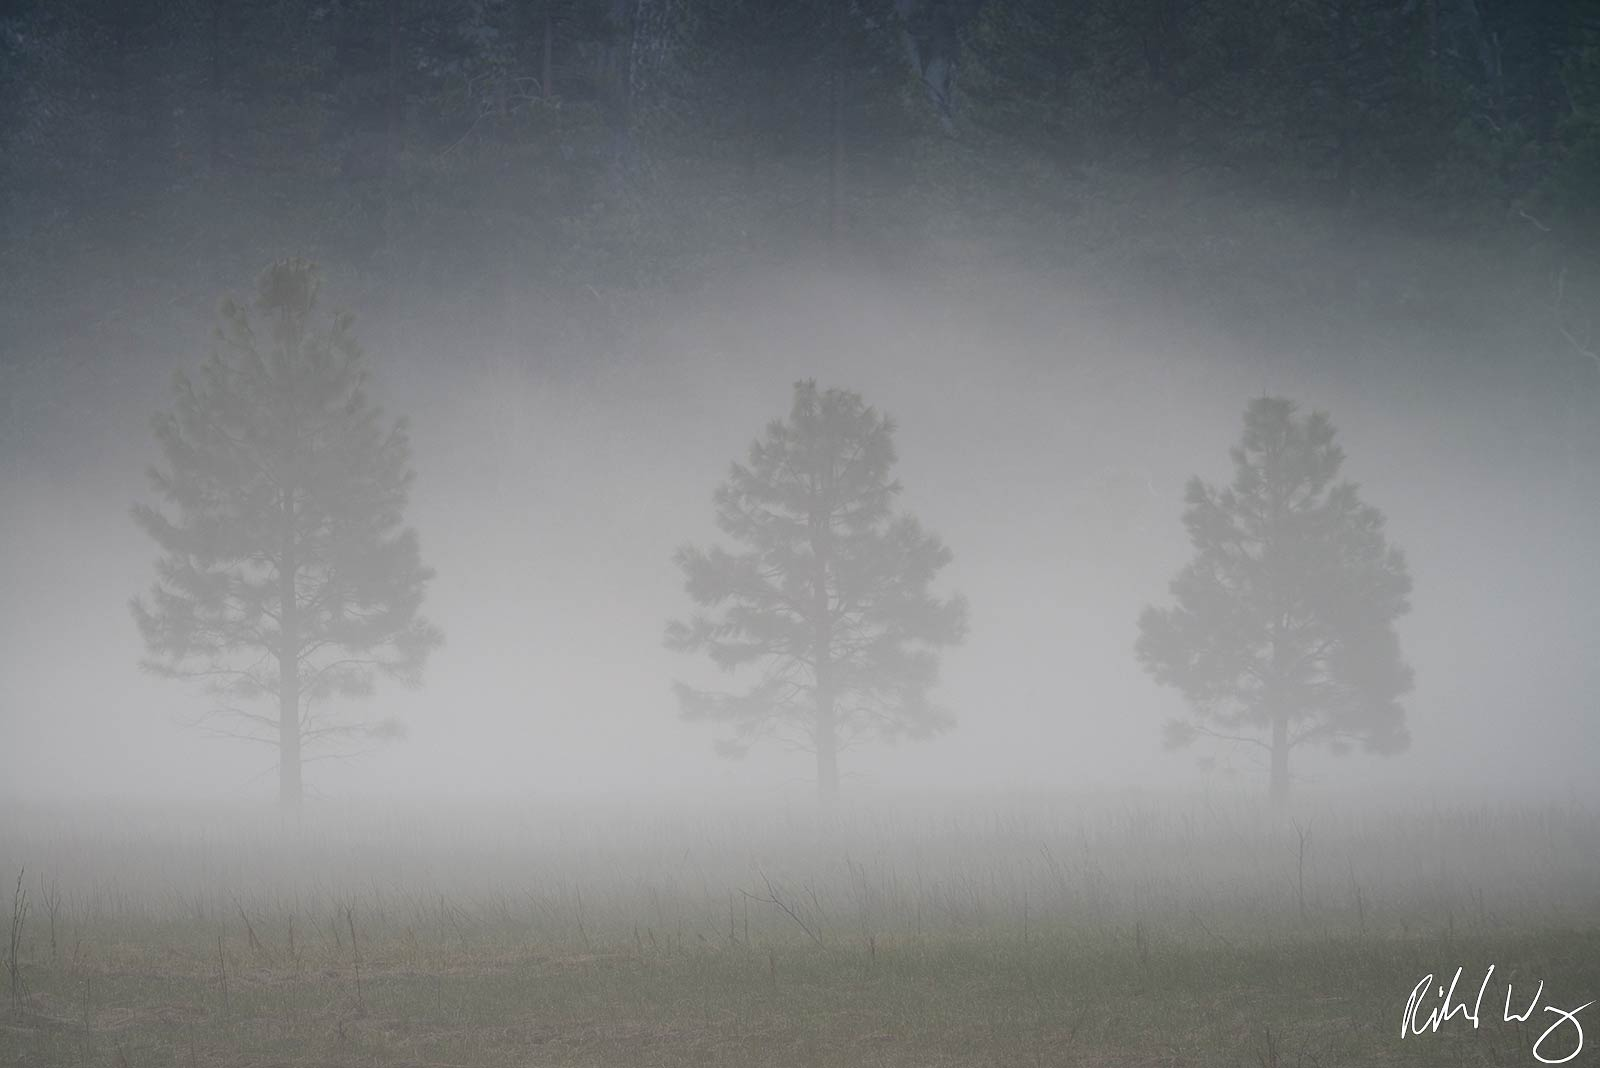 fog, three threes, yosemite valley, yosemite national park, california, photo, photo